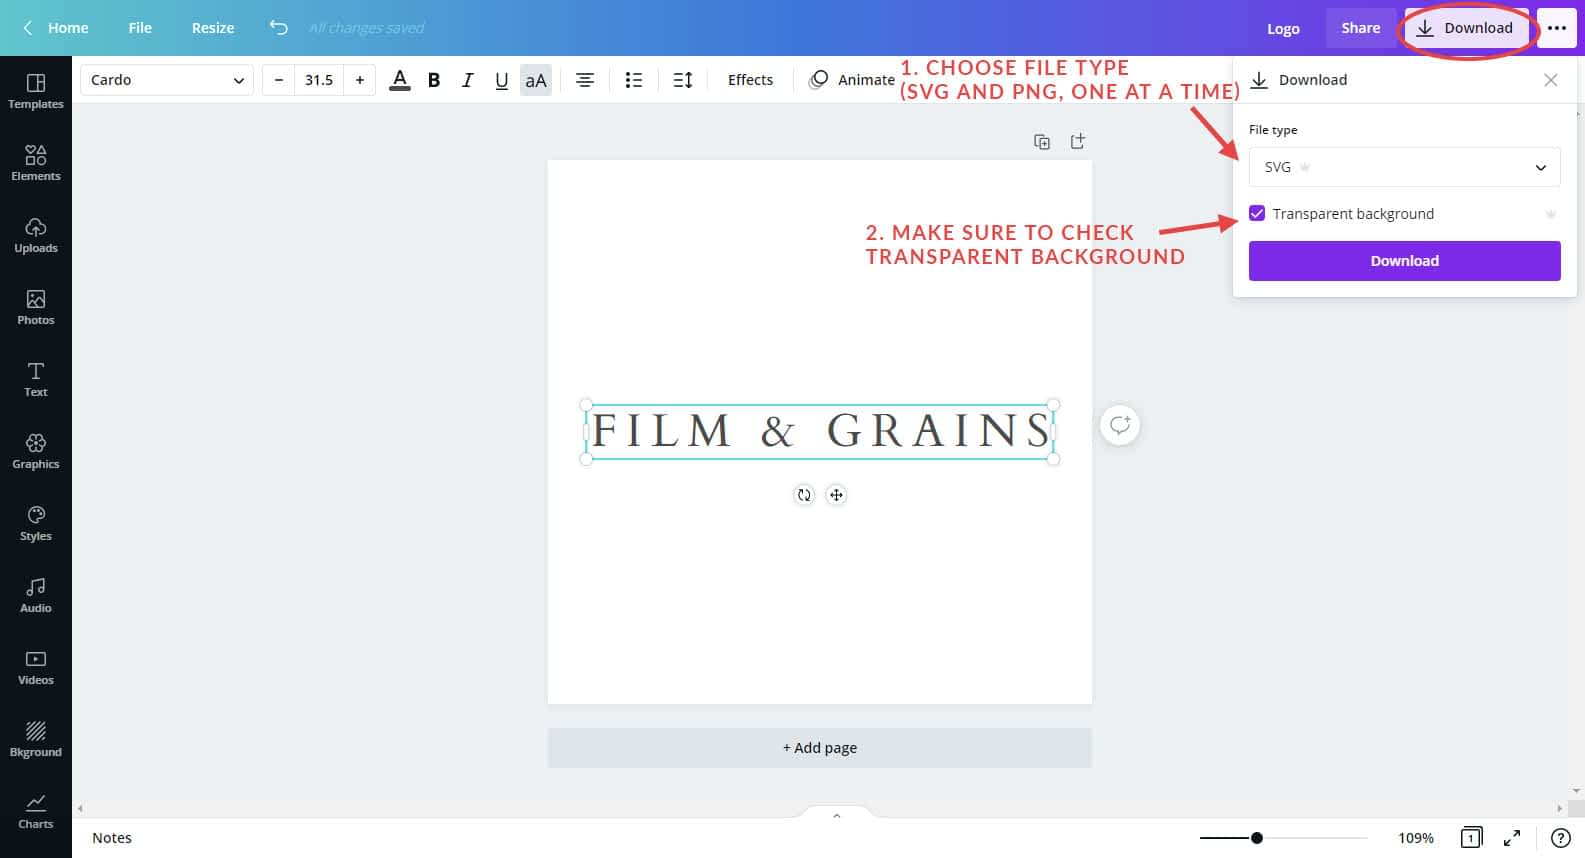 Downloading logo from Canva